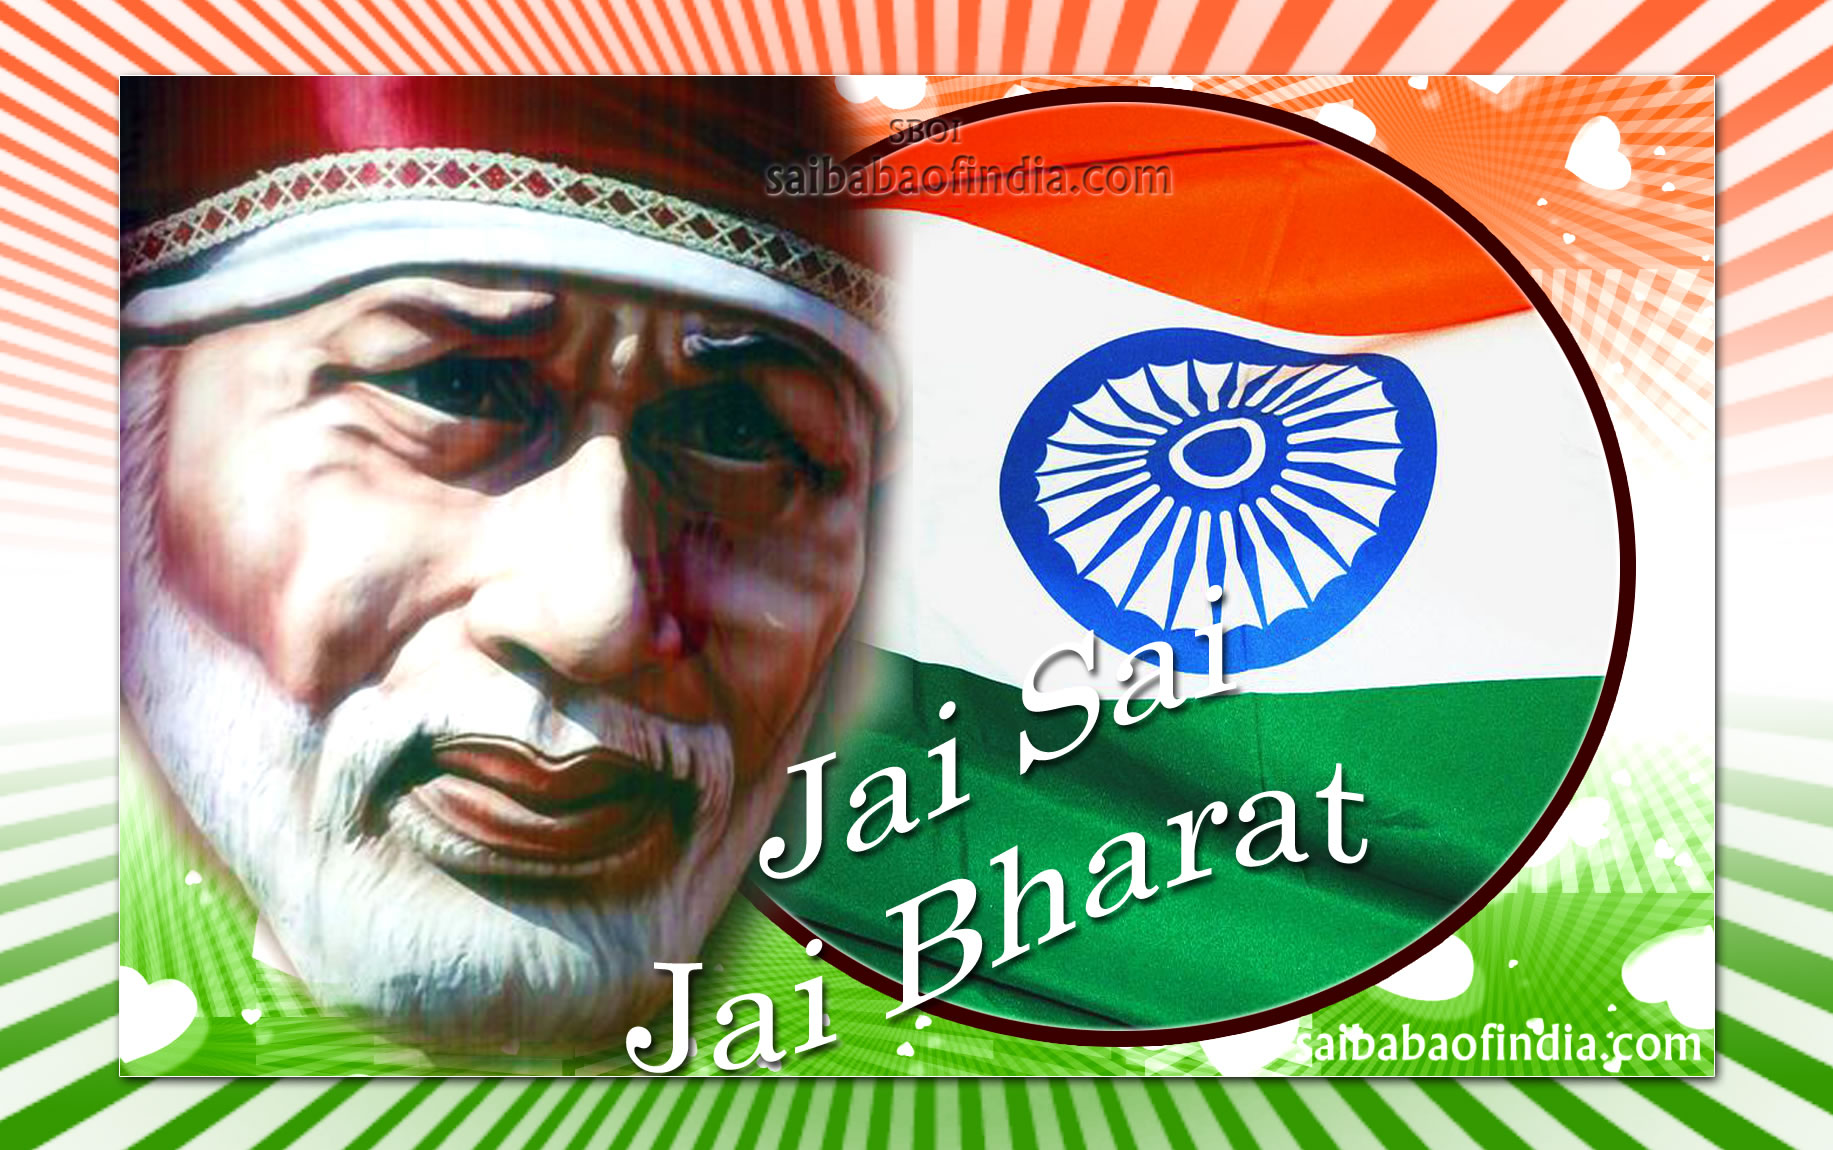 sai baba theme independence day greeting cards 15th